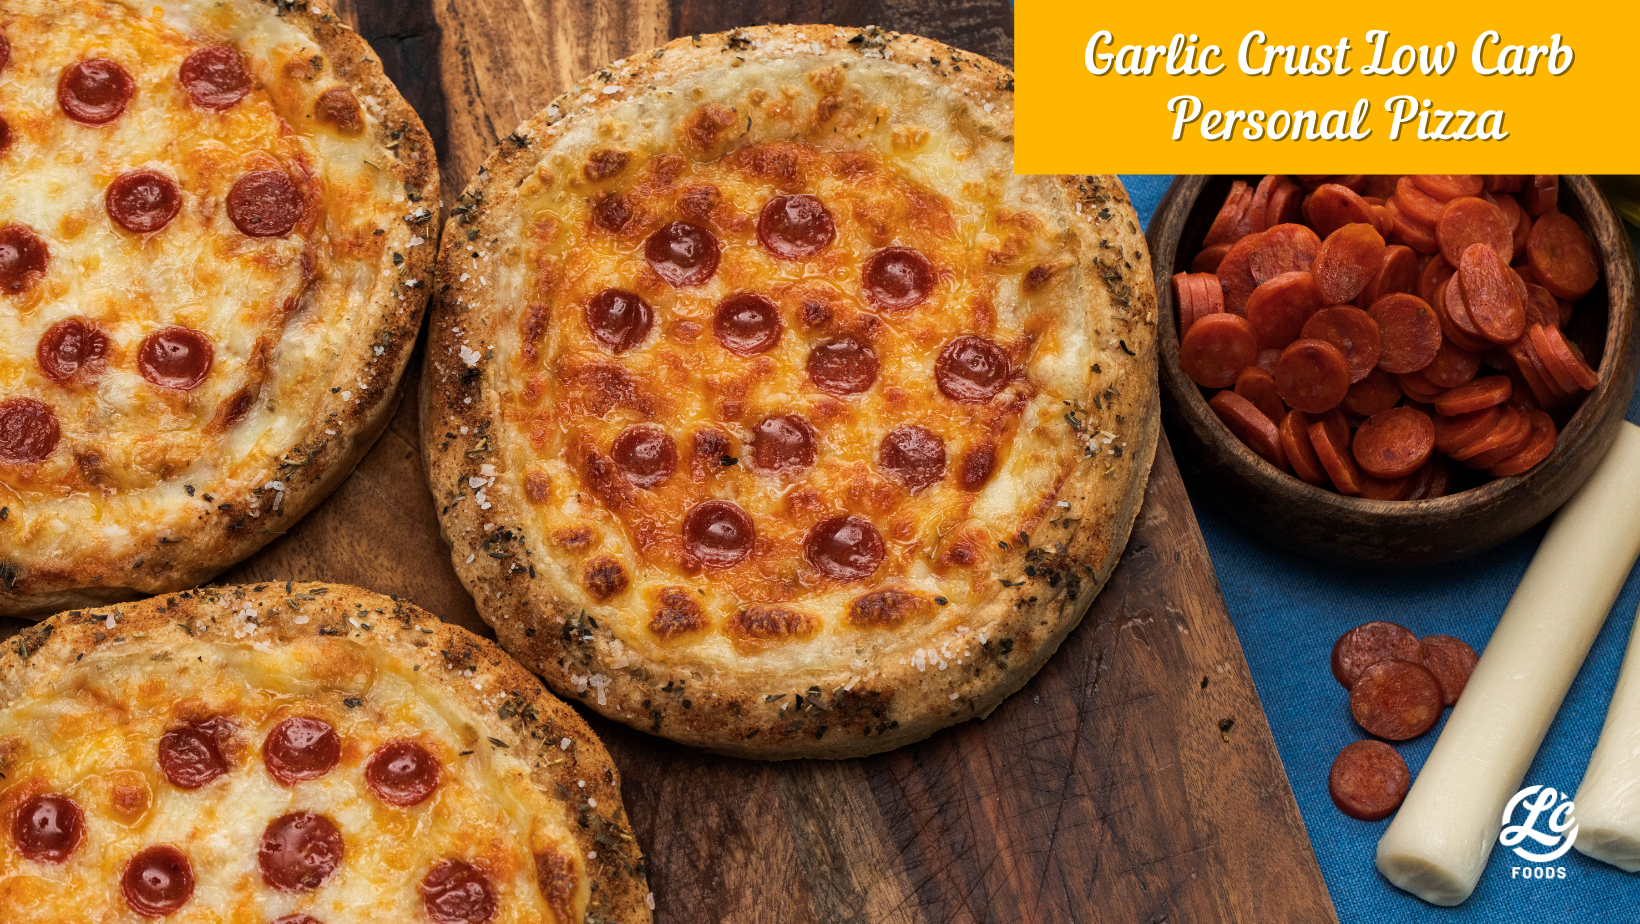 Thumbnail for Garlic Crust Low Carb Personal Pizza